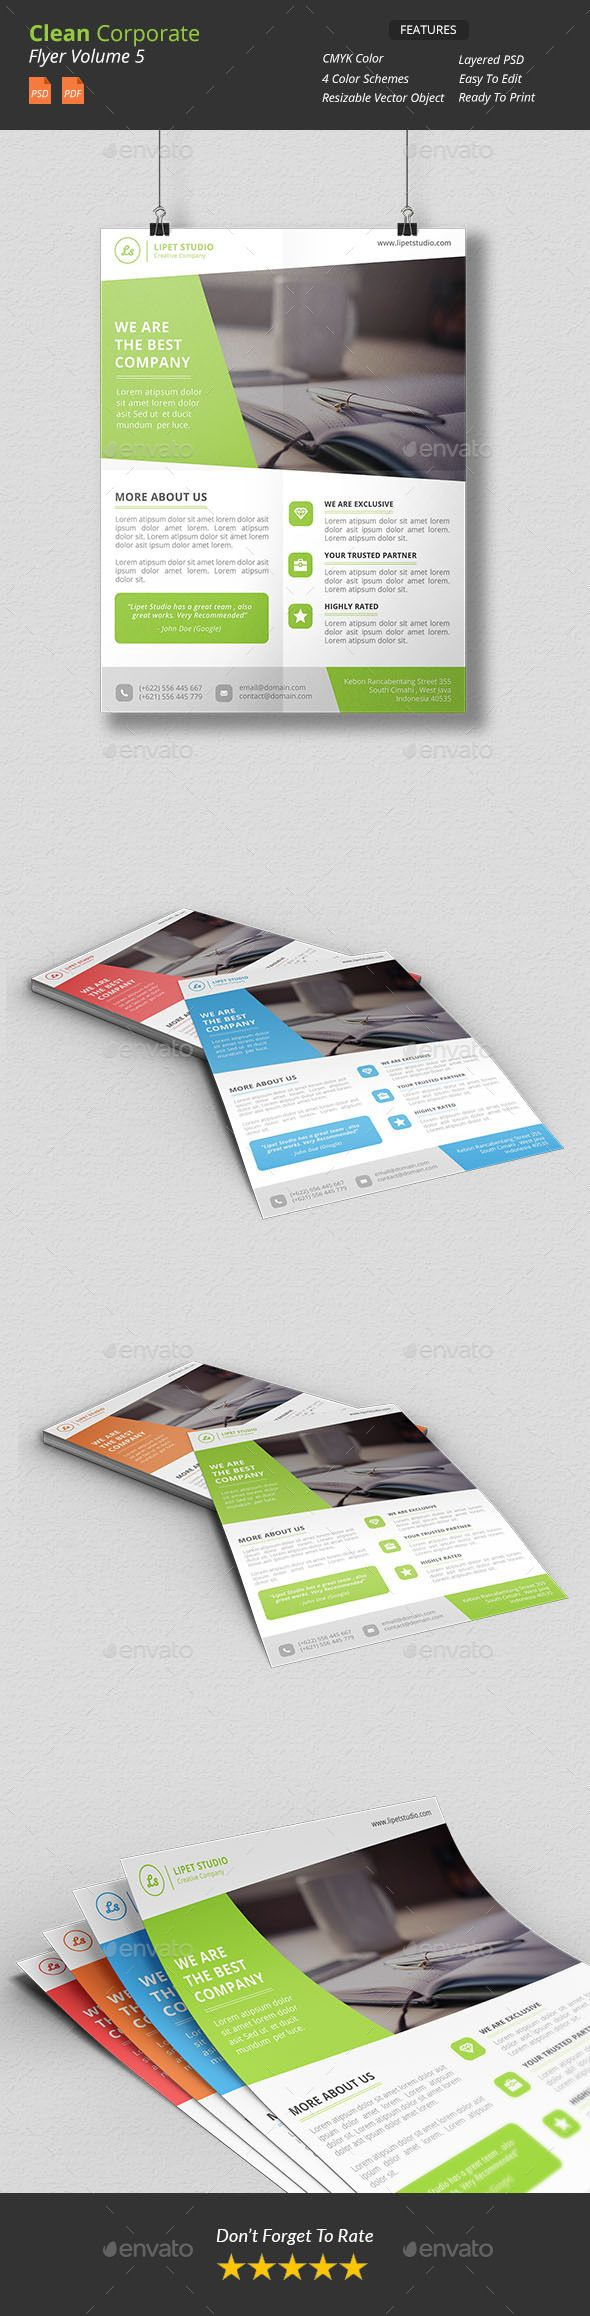 Clean Corporate Flyer v5